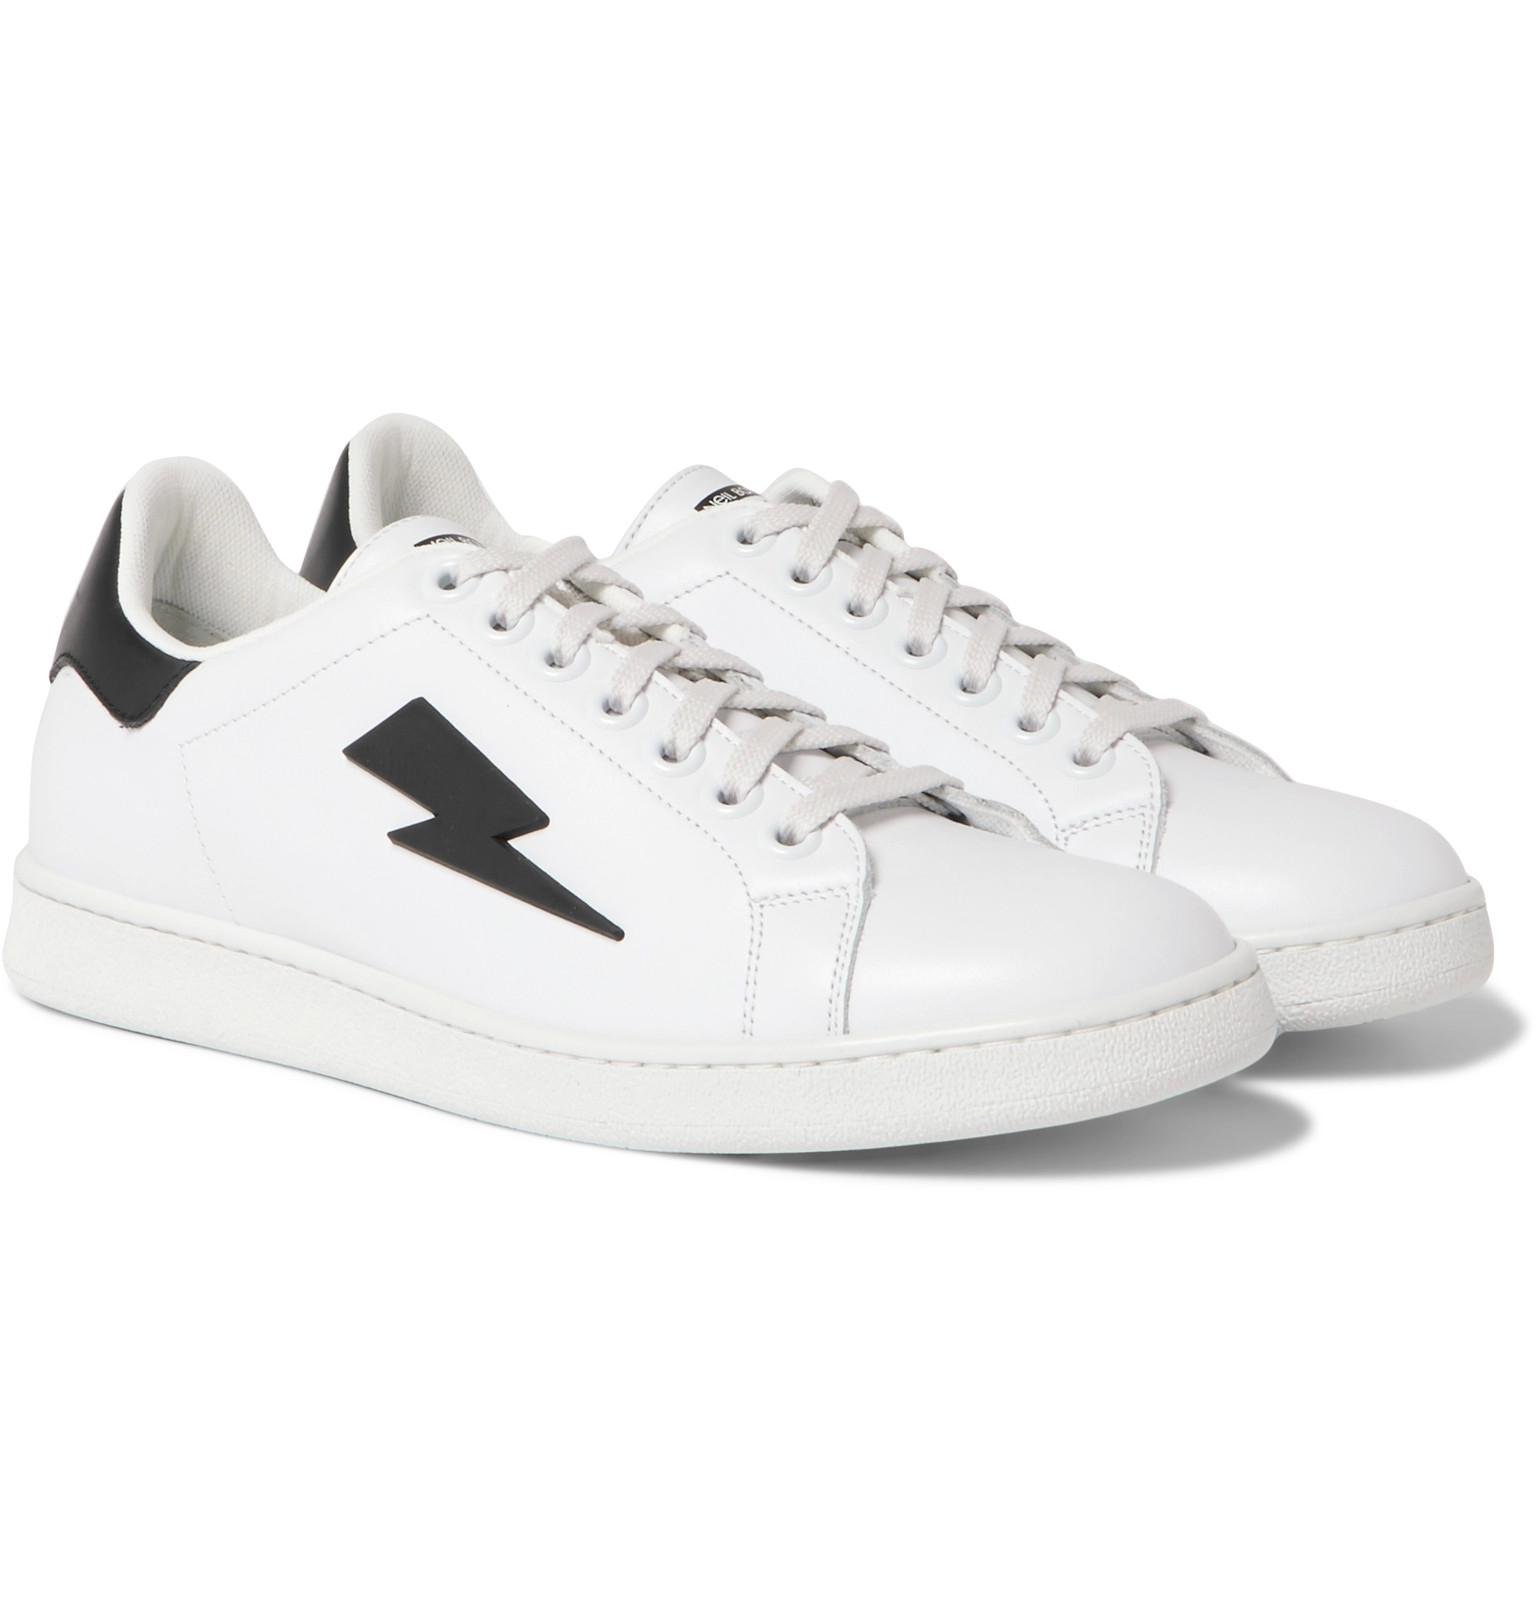 6cd107cddf4 neil-barrett-white-Rubber-trimmed-Leather-Sneakers-White.jpeg